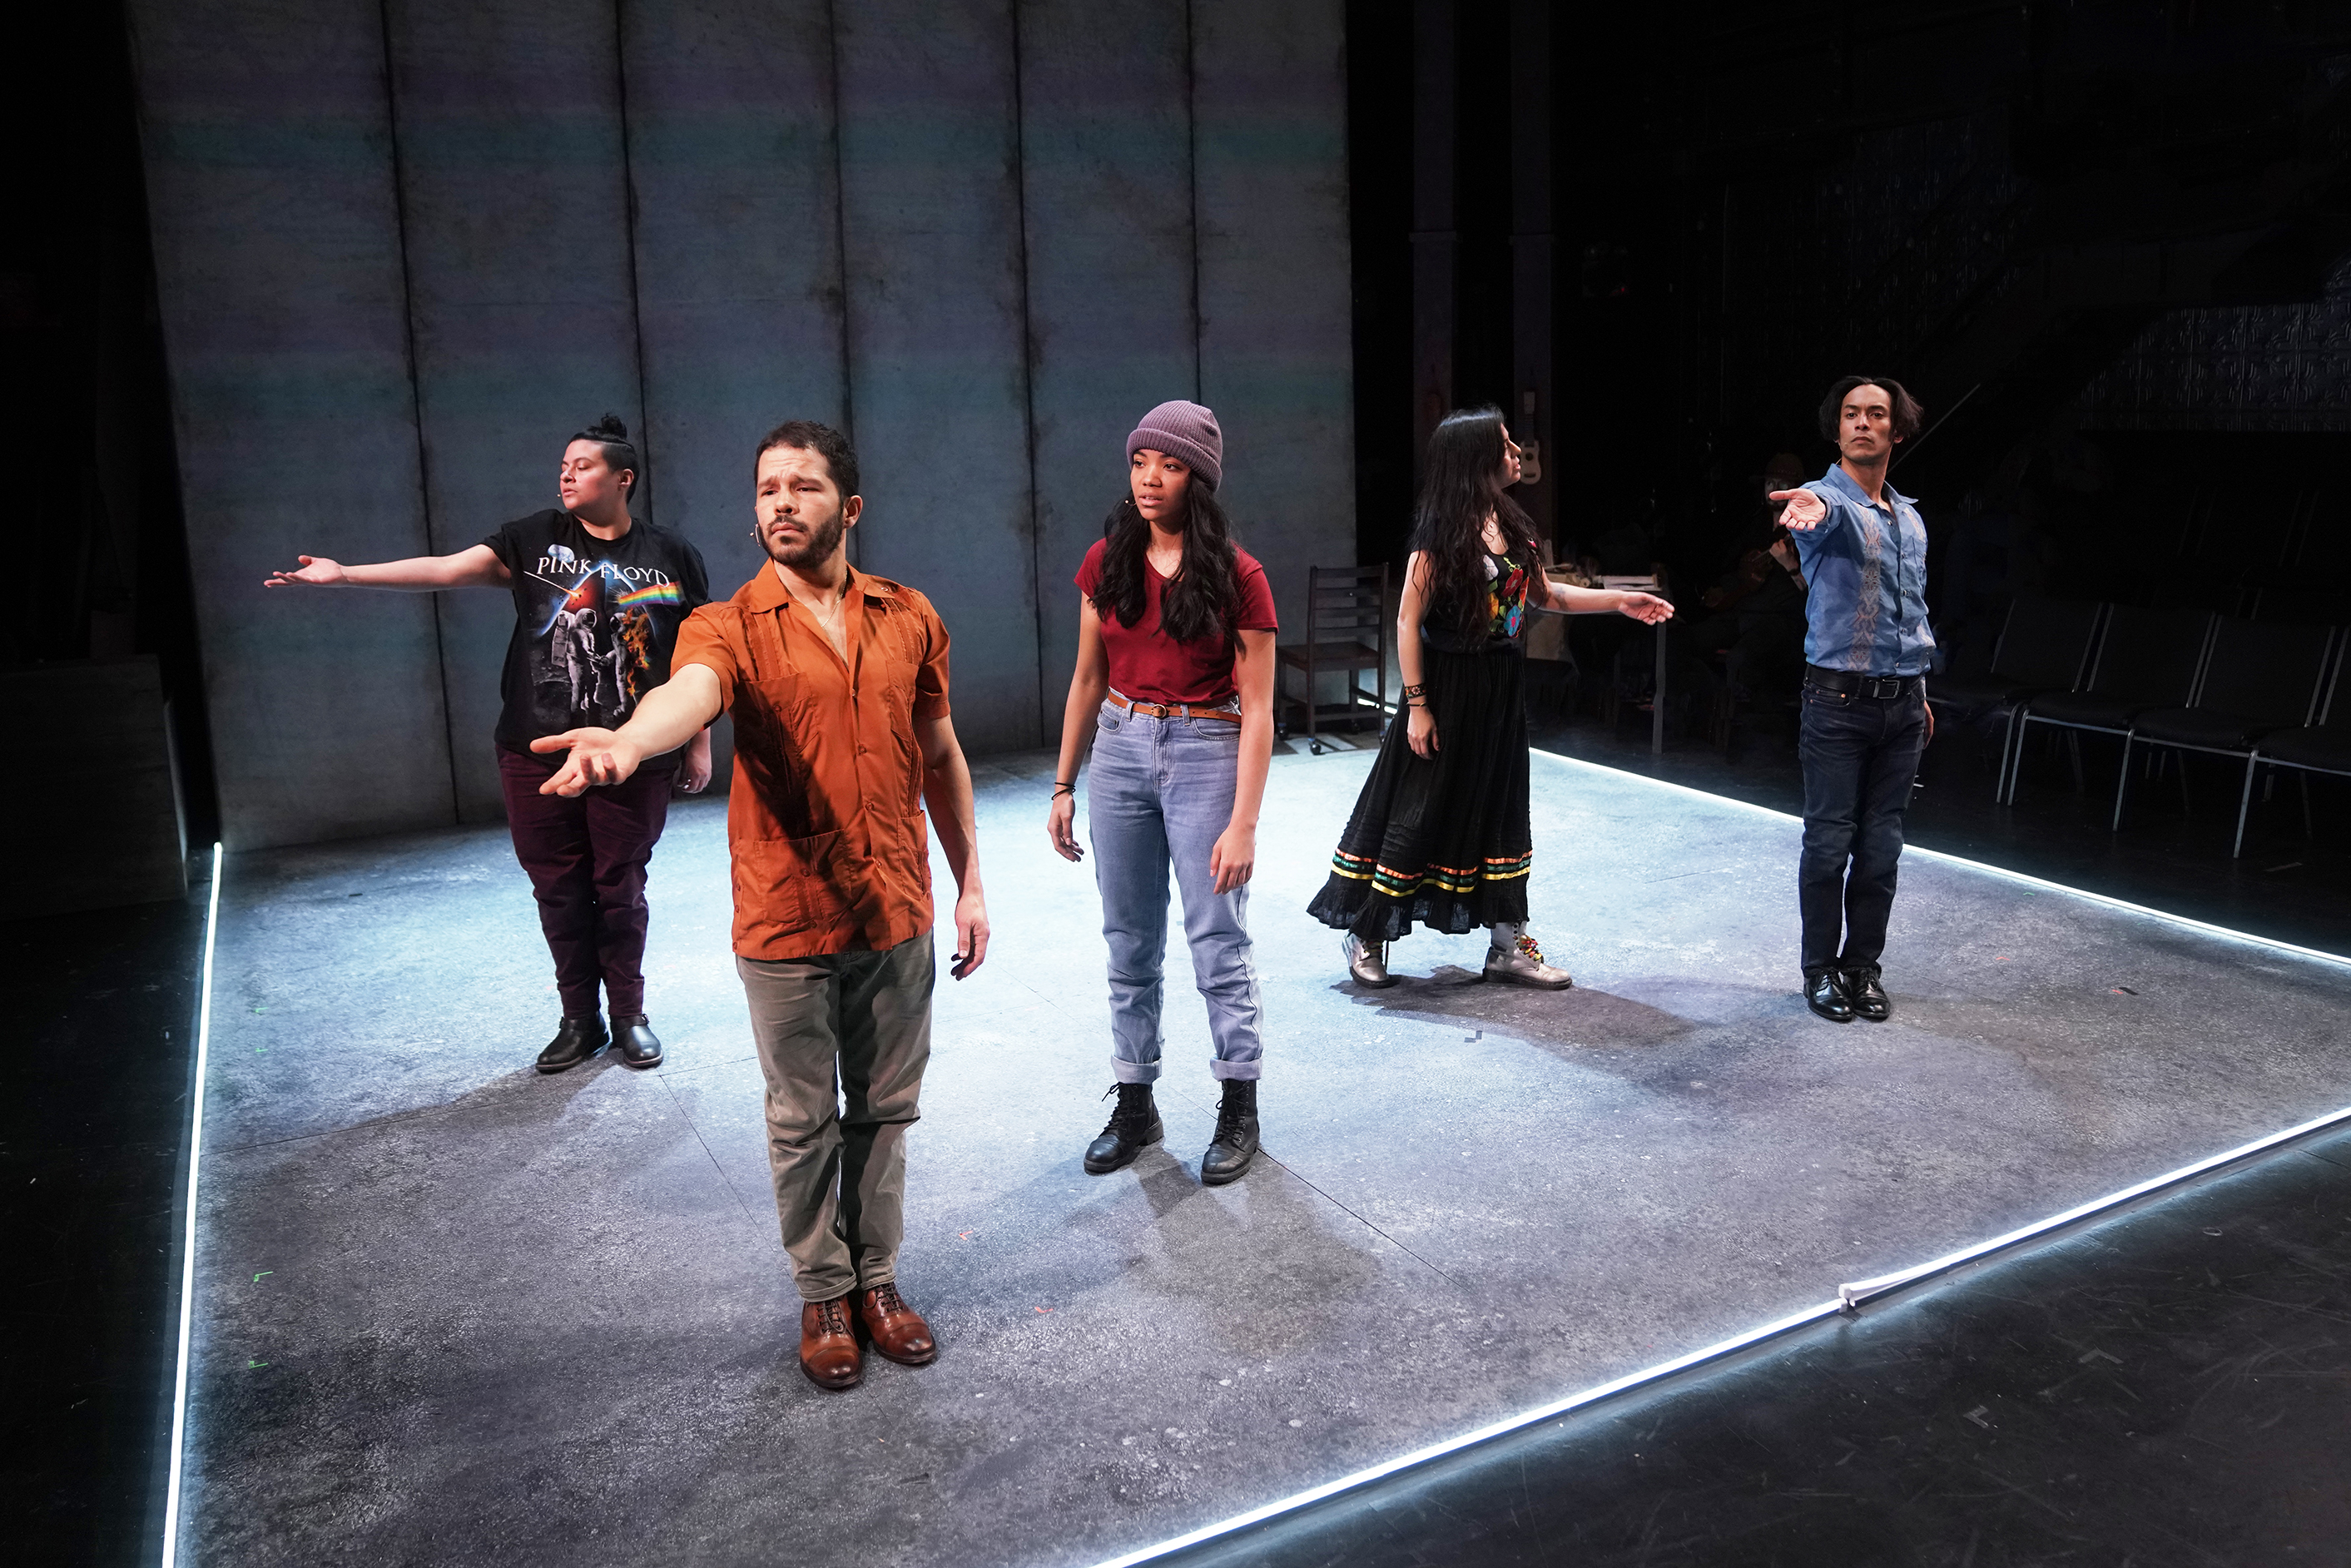 five performers onstage with outstretched hands